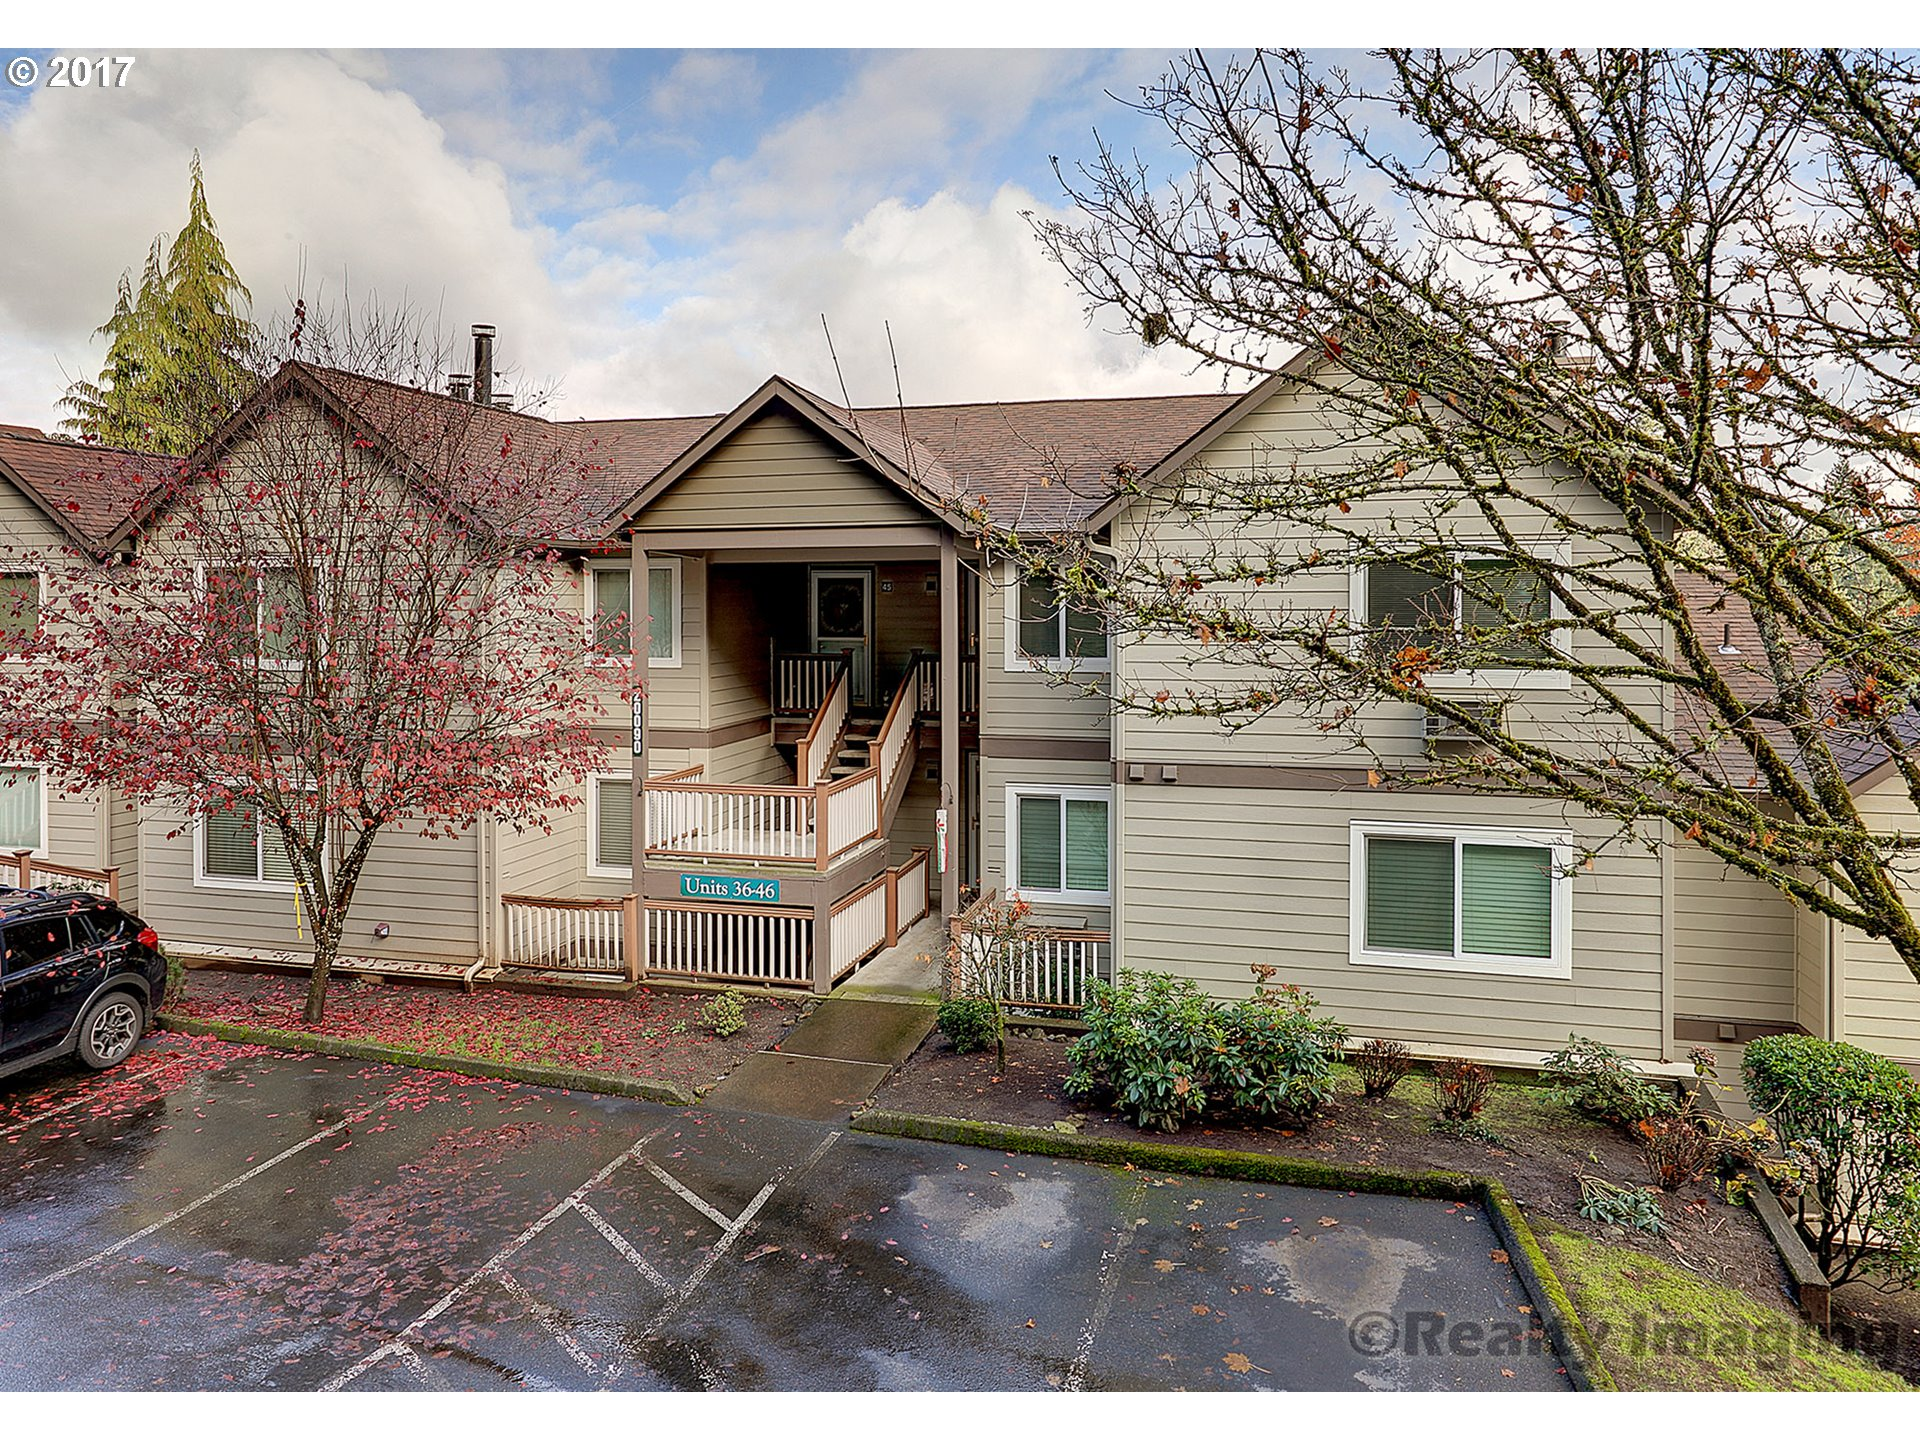 20090 LARKSPUR LN 41, West Linn, OR 97068